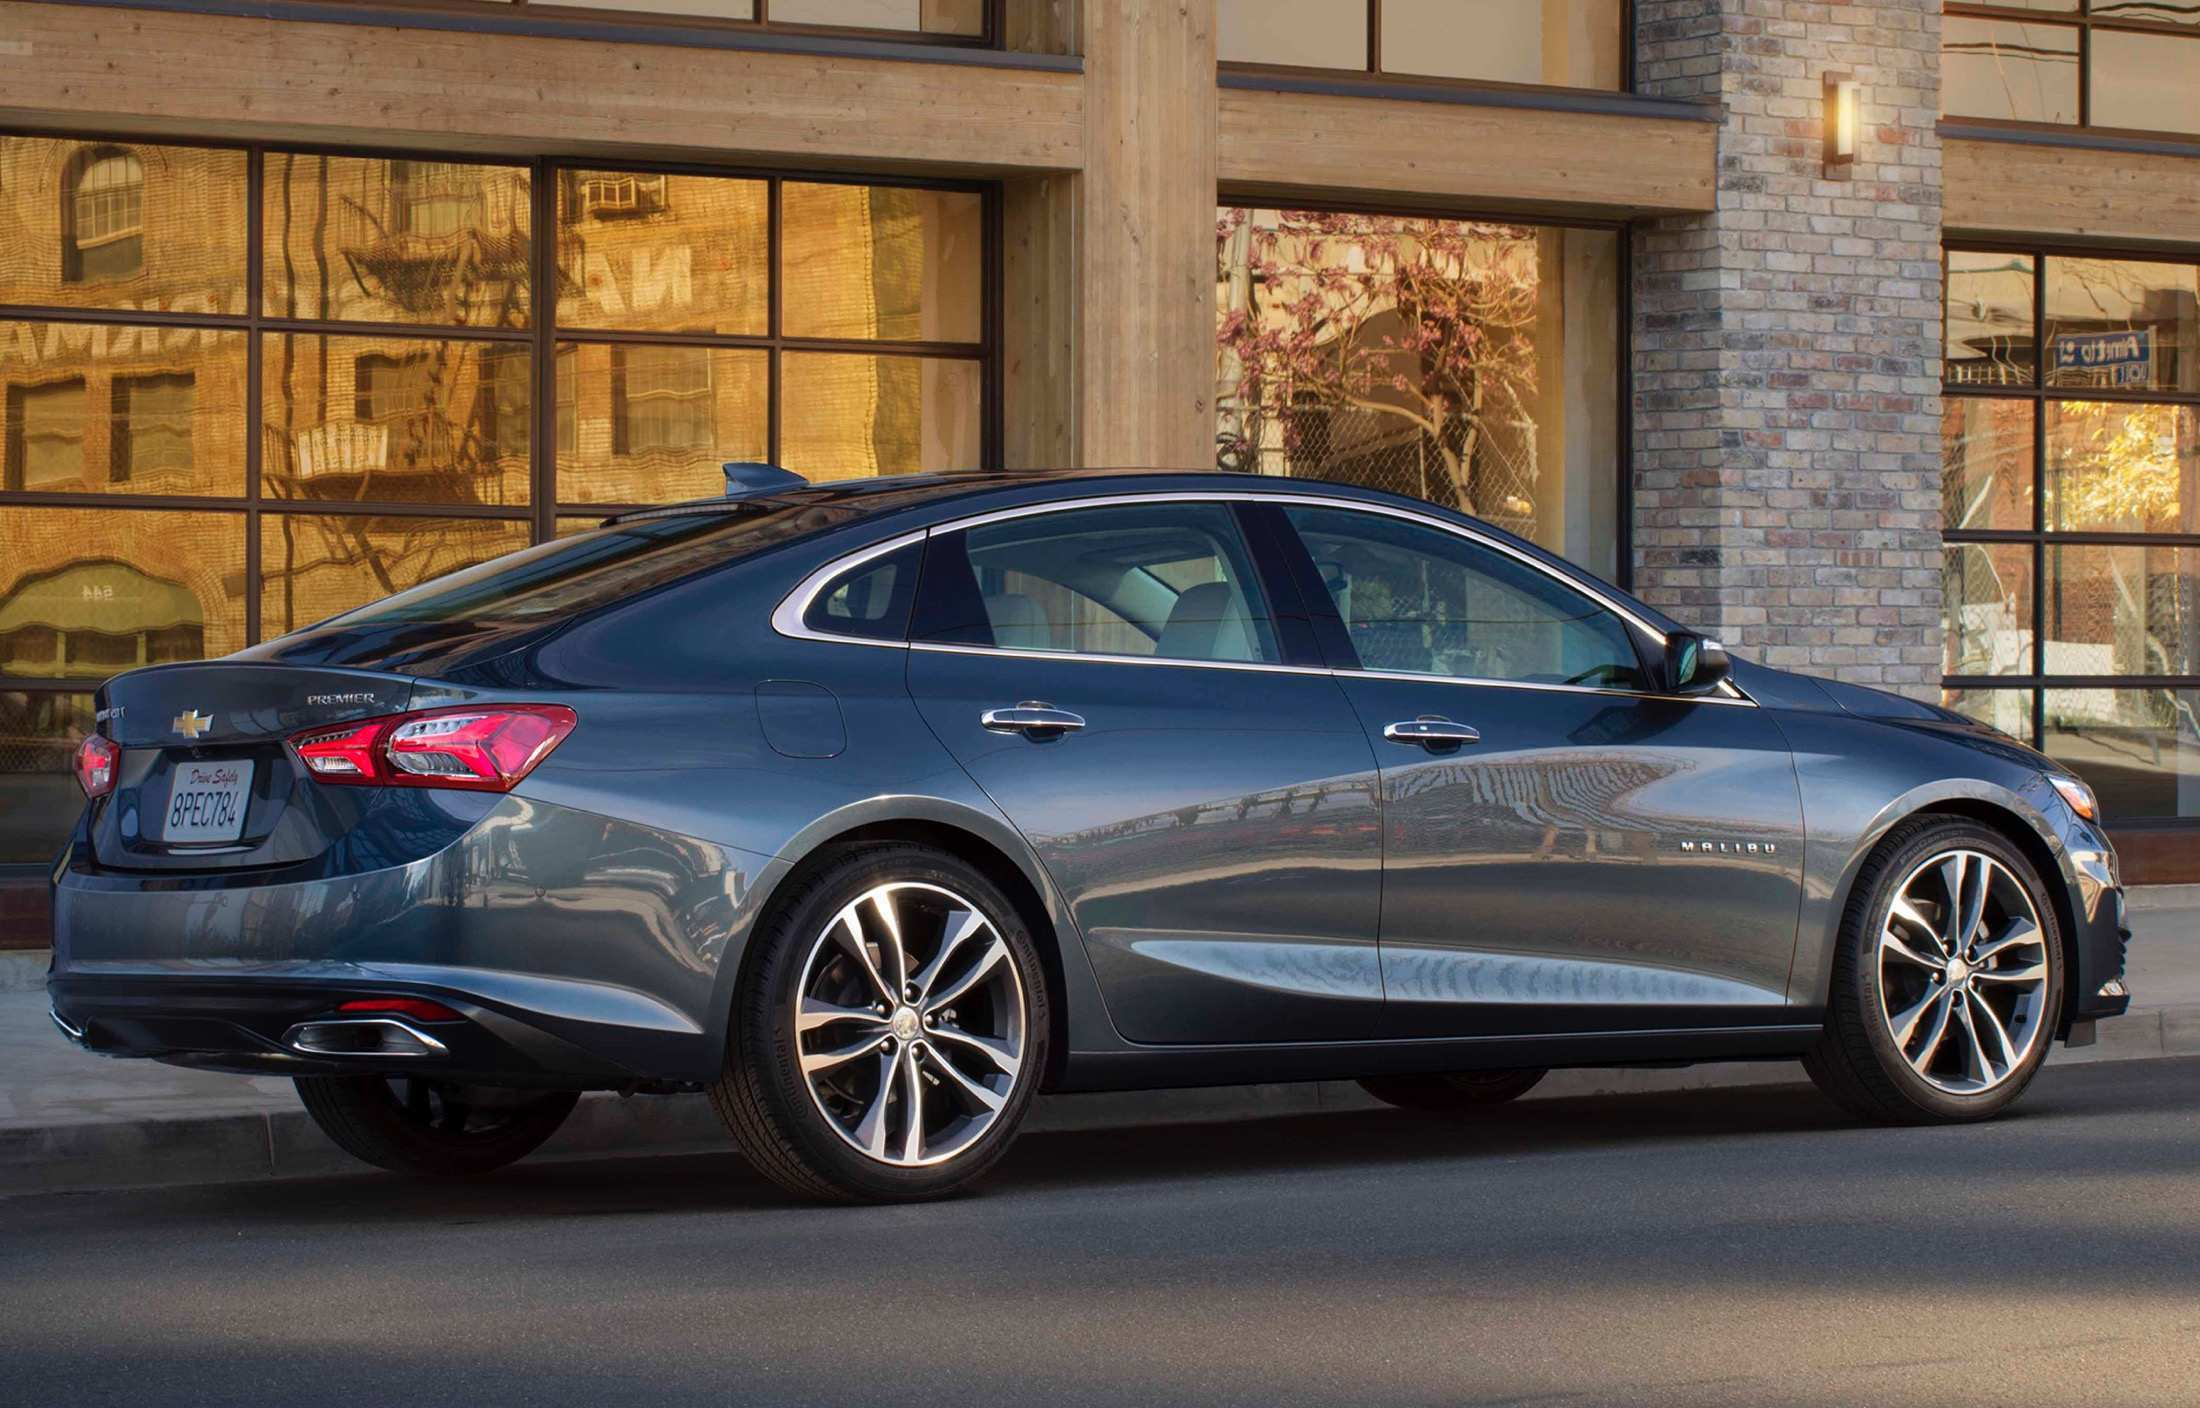 21 All New The Chevrolet Malibu 2019 Price Rumors Specs with The Chevrolet Malibu 2019 Price Rumors